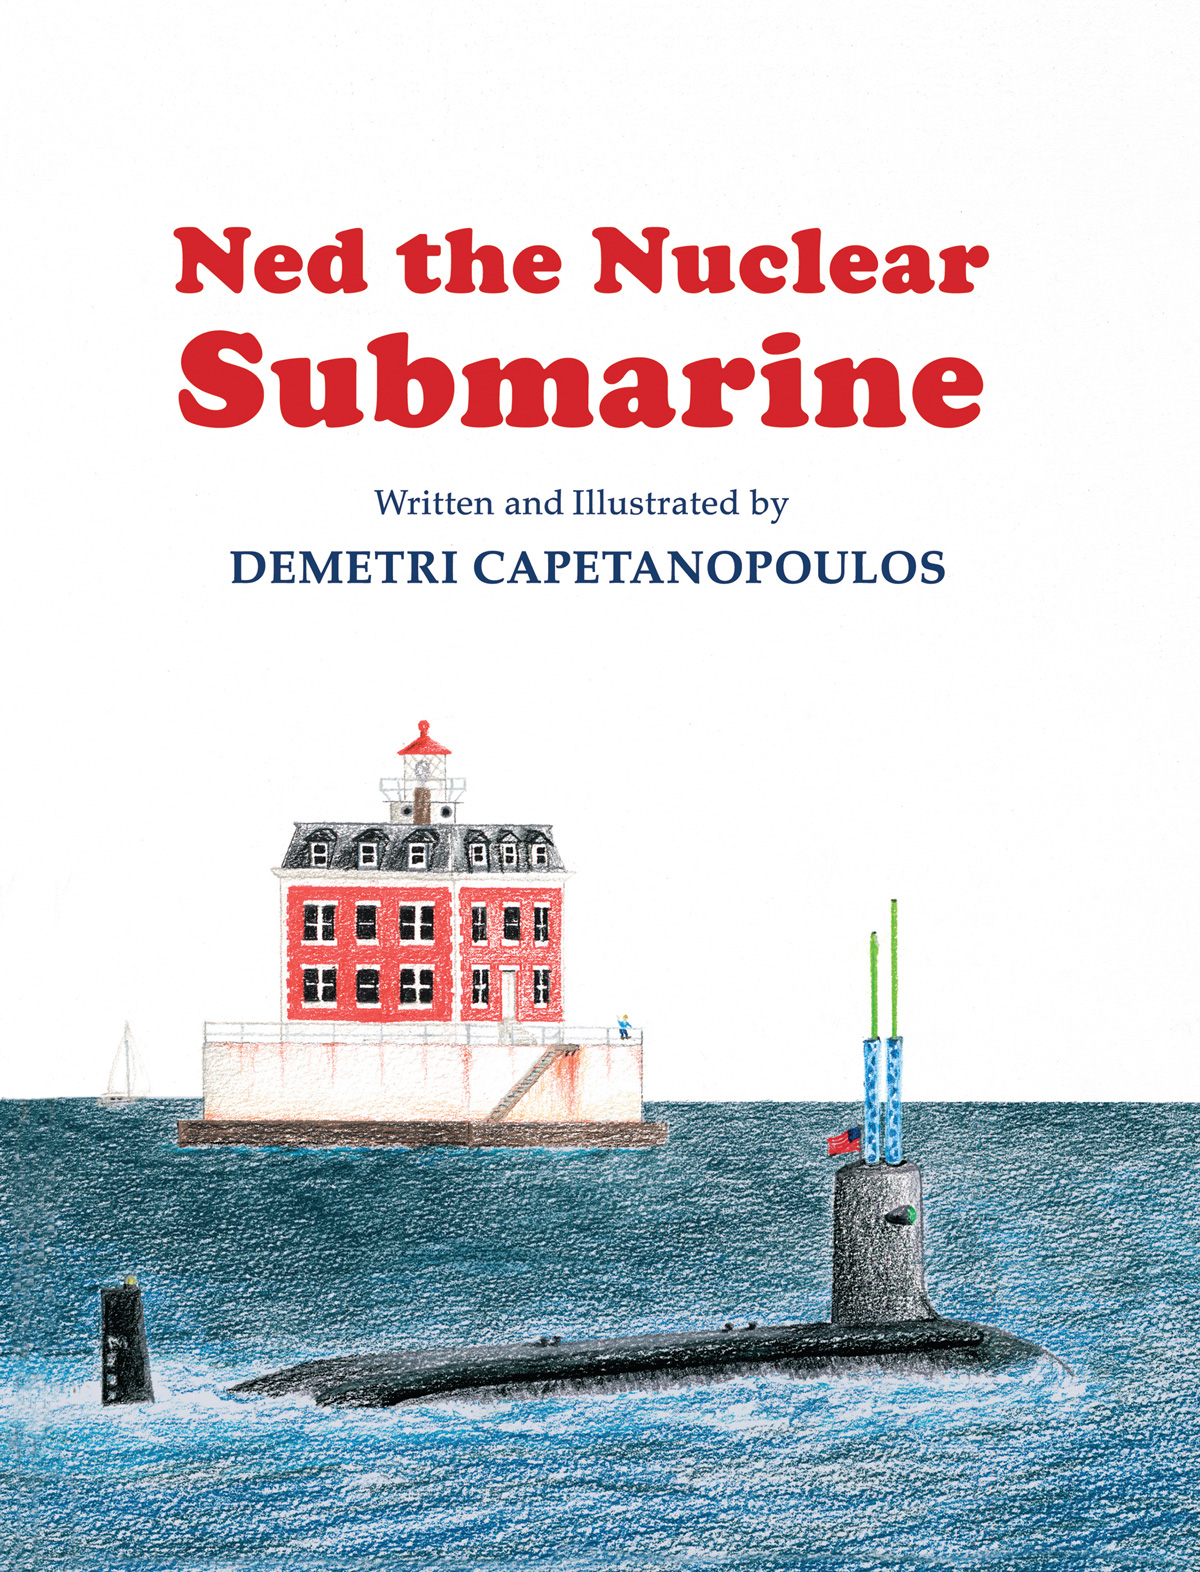 Ned the Nuclear Submarine